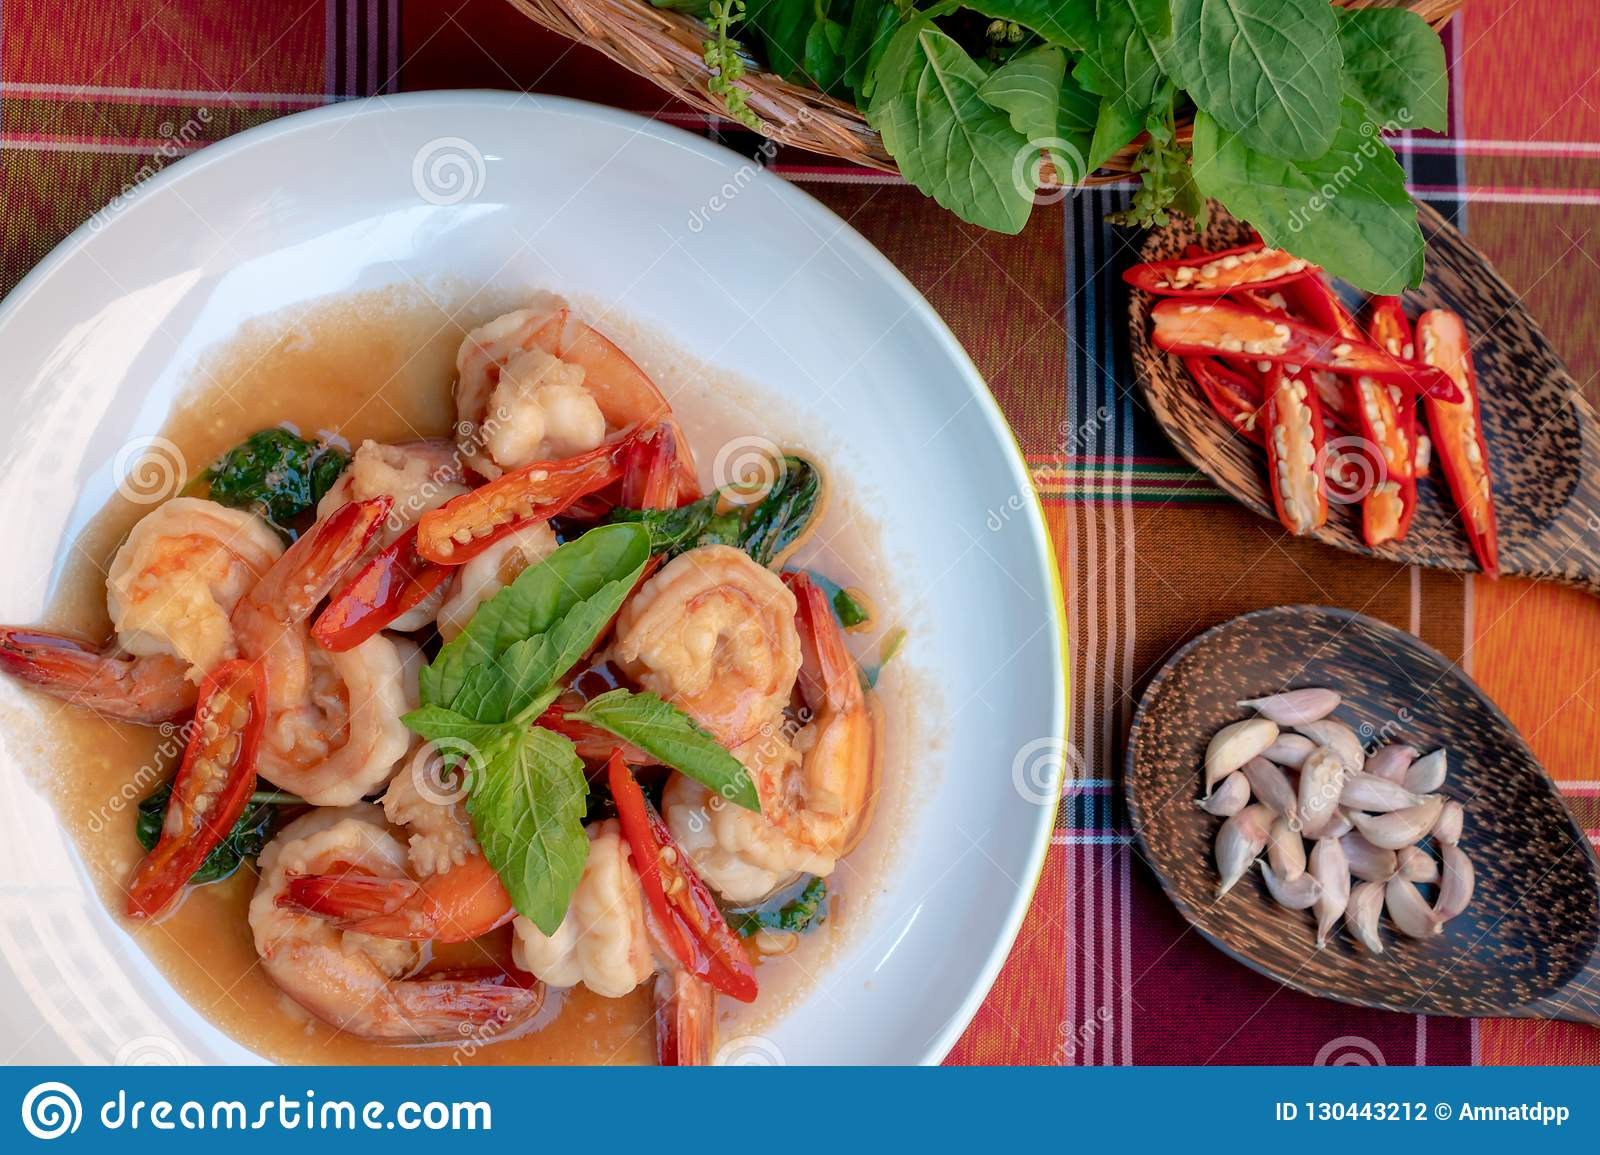 Fried shrimps with sweet basil leaves, spicy thai food